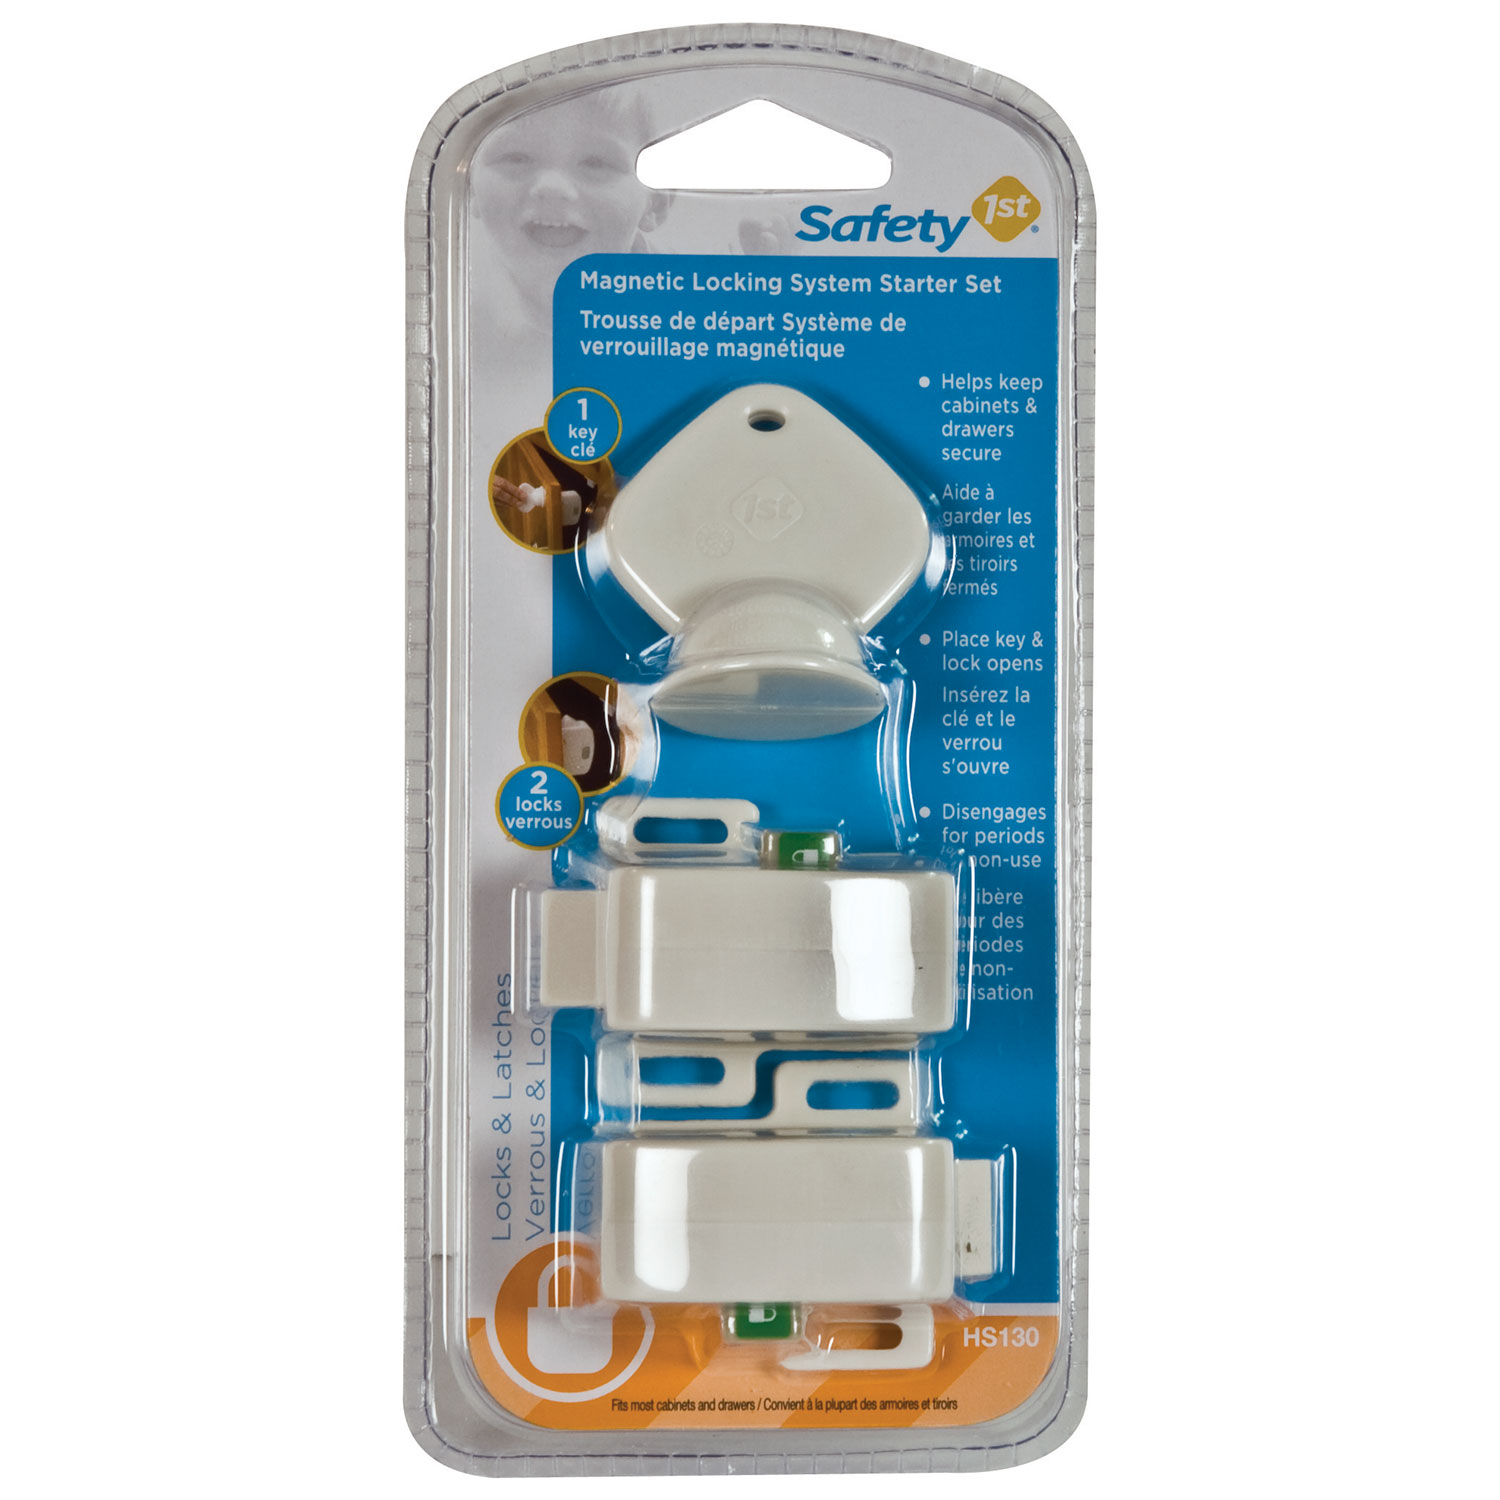 Safety 1st 8 lock complete magnetic locking system set safety 1st - Safety 1st Magnetic Locking System Starter Set 6 Months White Latches Locks Plugs Best Buy Canada